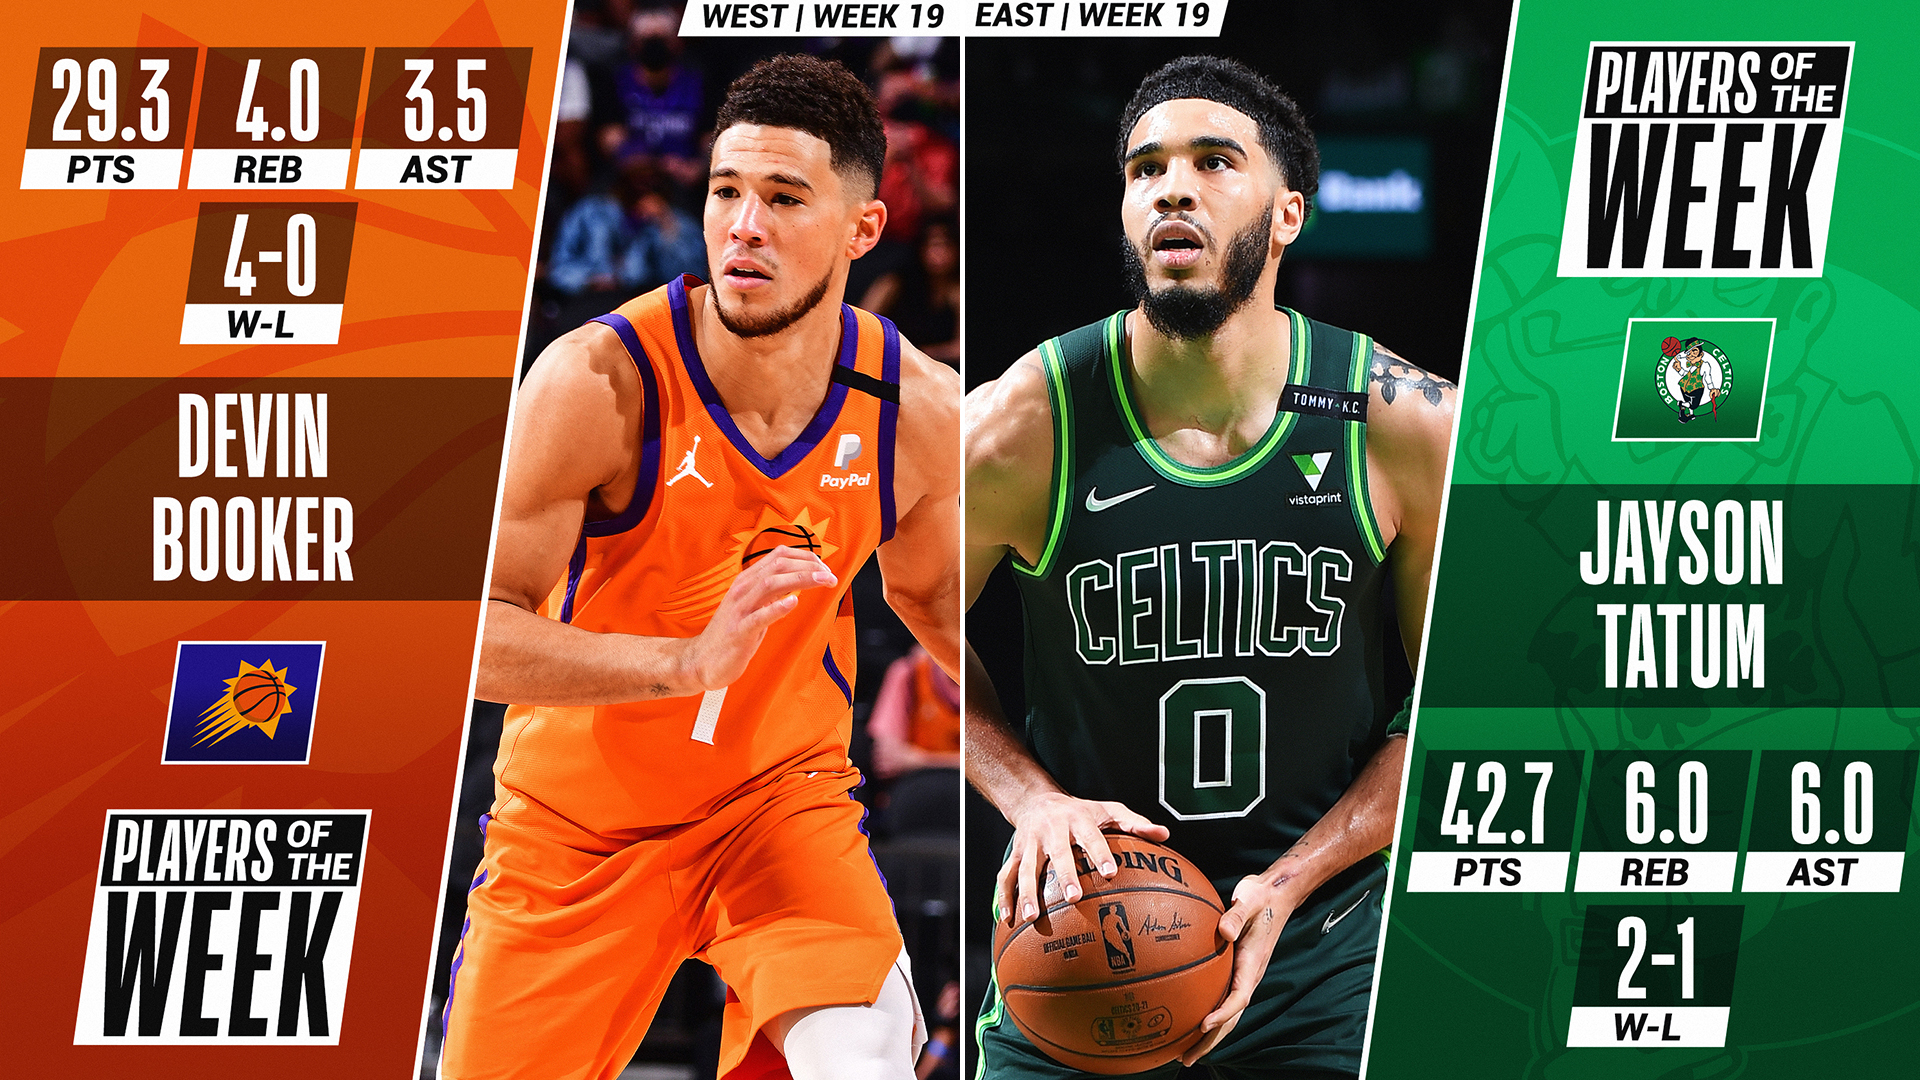 Devin Booker, Jayson Tatum named NBA Players of the Week